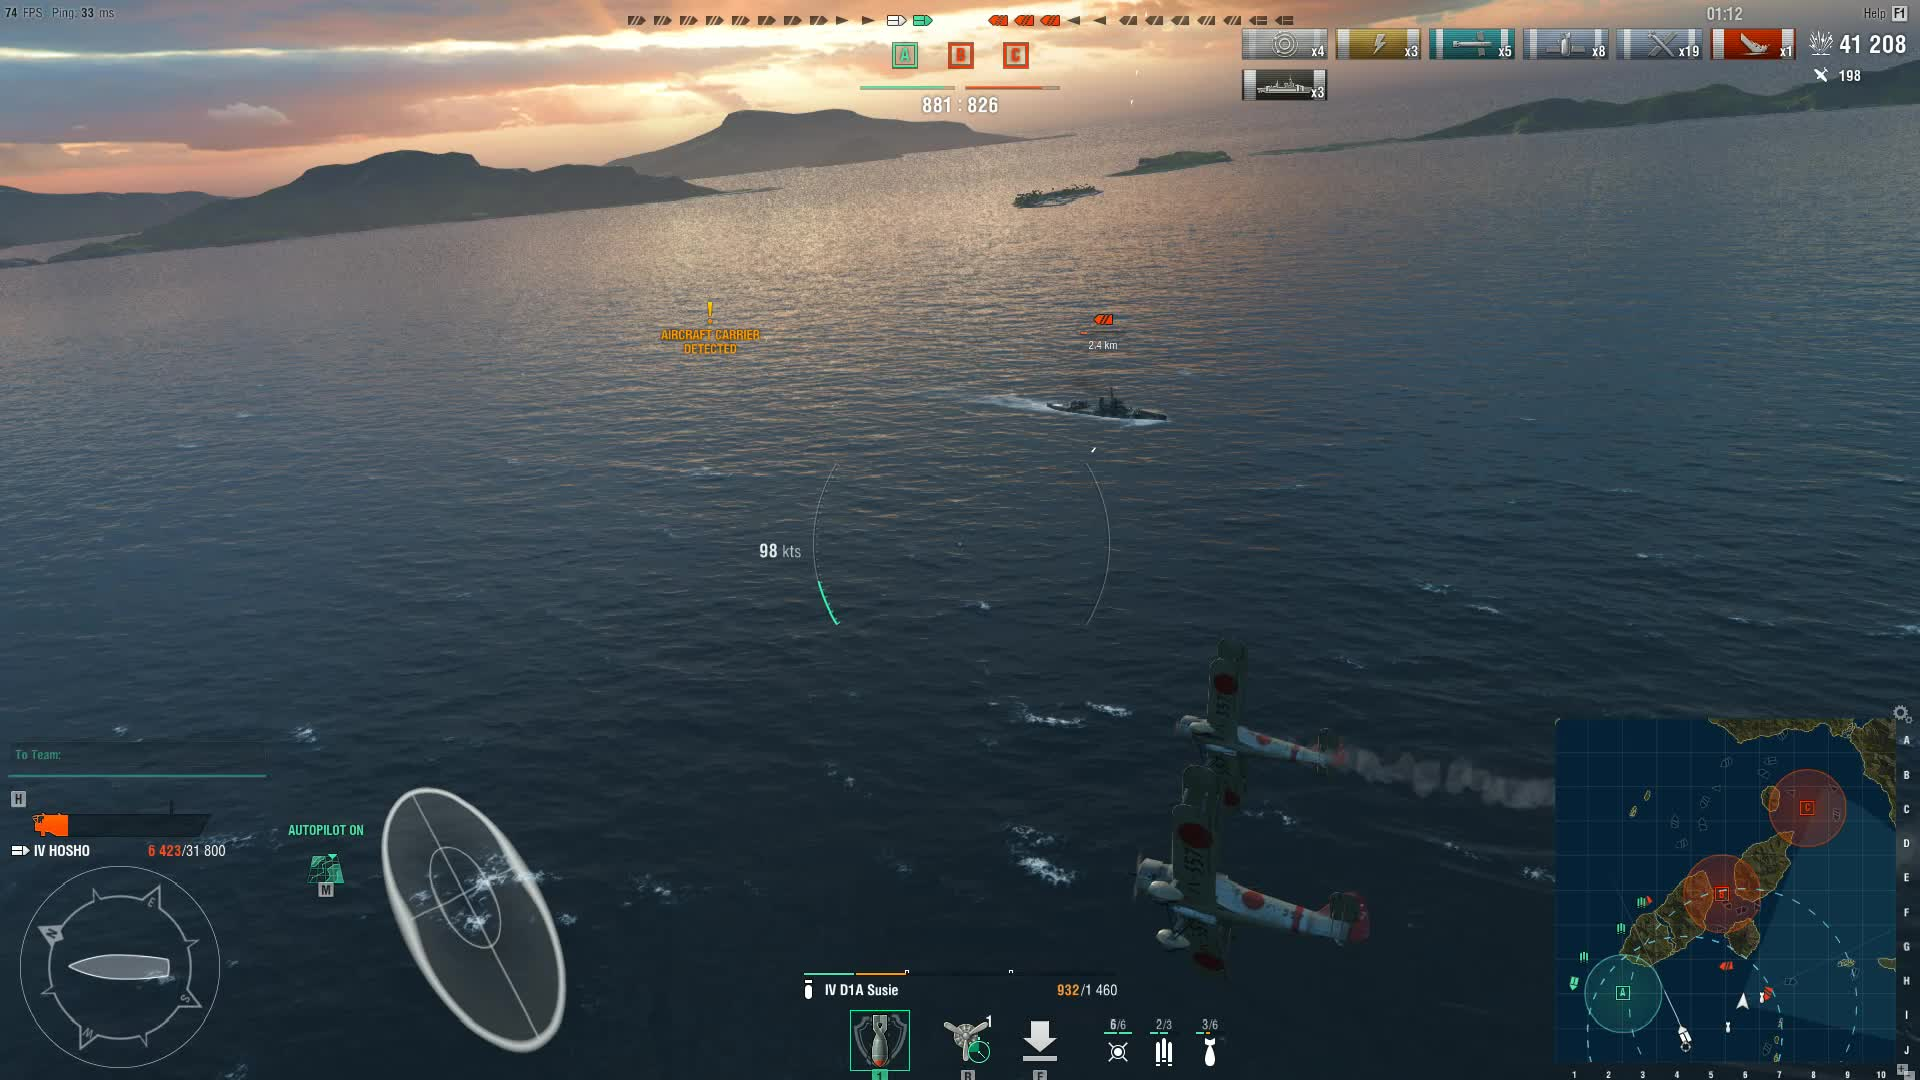 worldofwarships, vlc-record-2019-04-19-23h56m33s-World of Warships 2019.04.19 - 23.52.59.07.DVR.mp4- GIFs